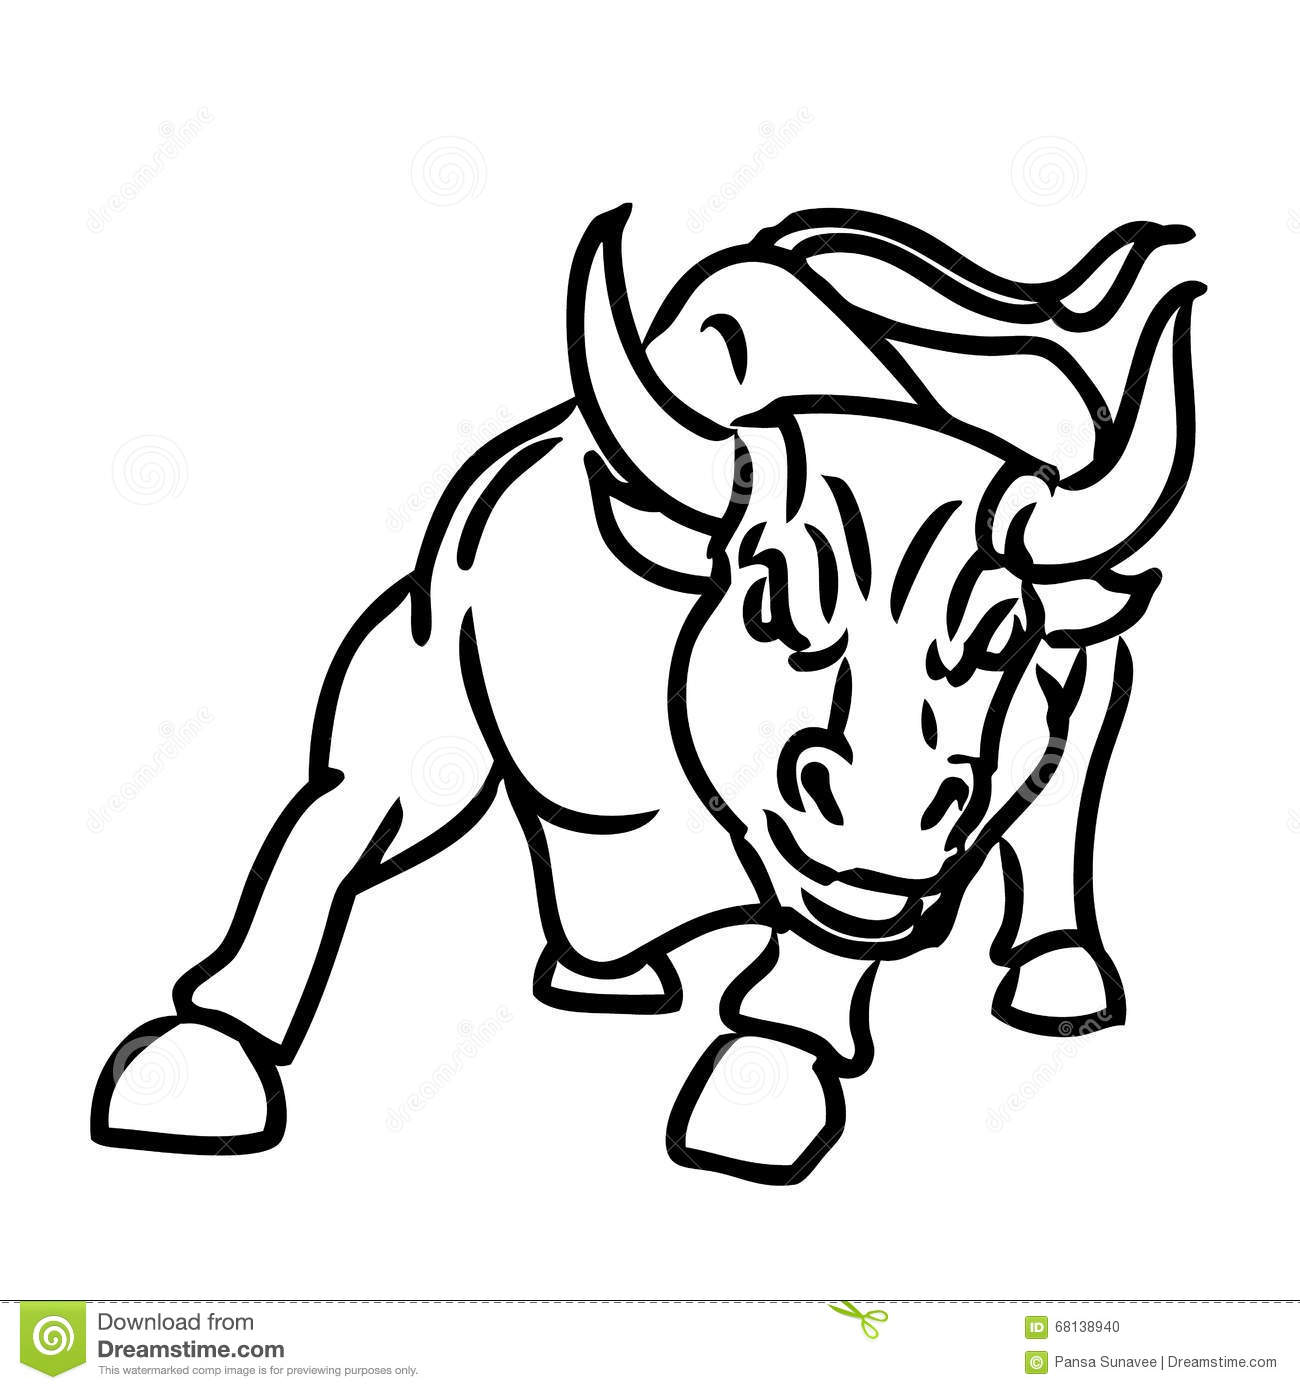 Freehand Sketch Illustration Of Charging Bull Stock Vector ...